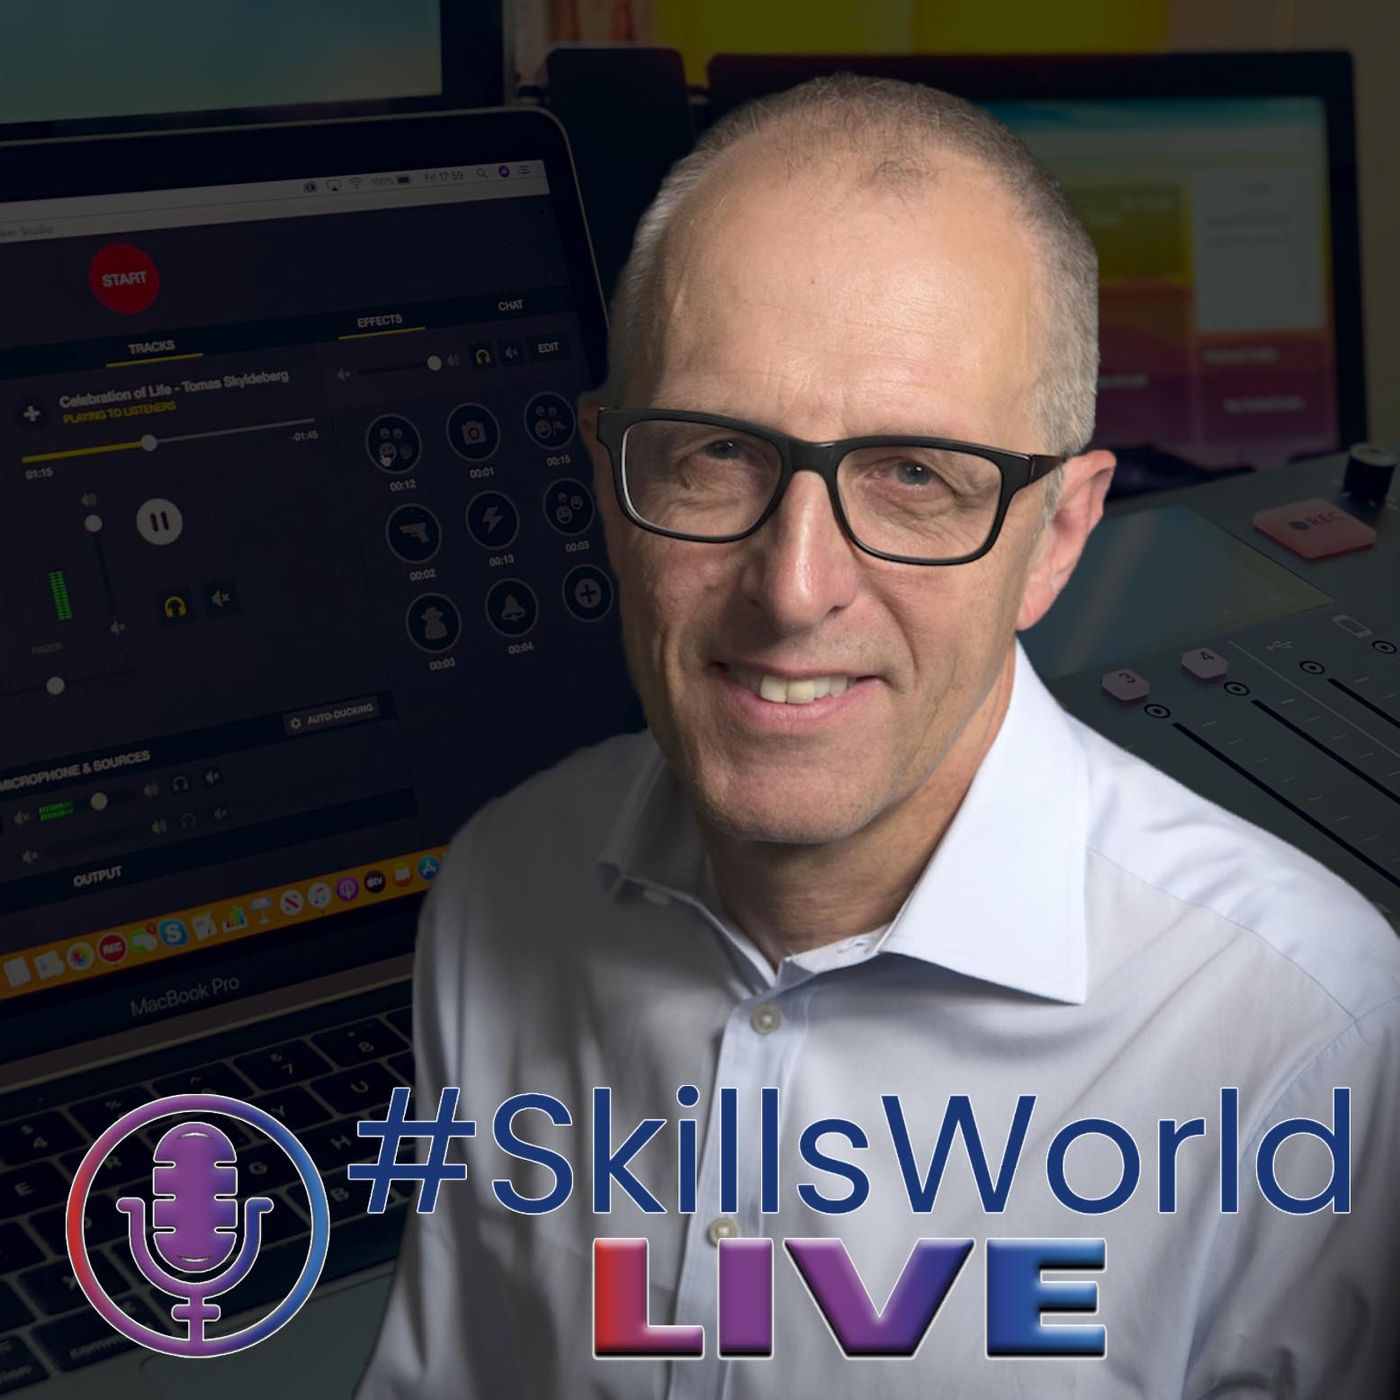 One Year on from Augar, will it happen? Episode 22: #SkillsWorldLIVE